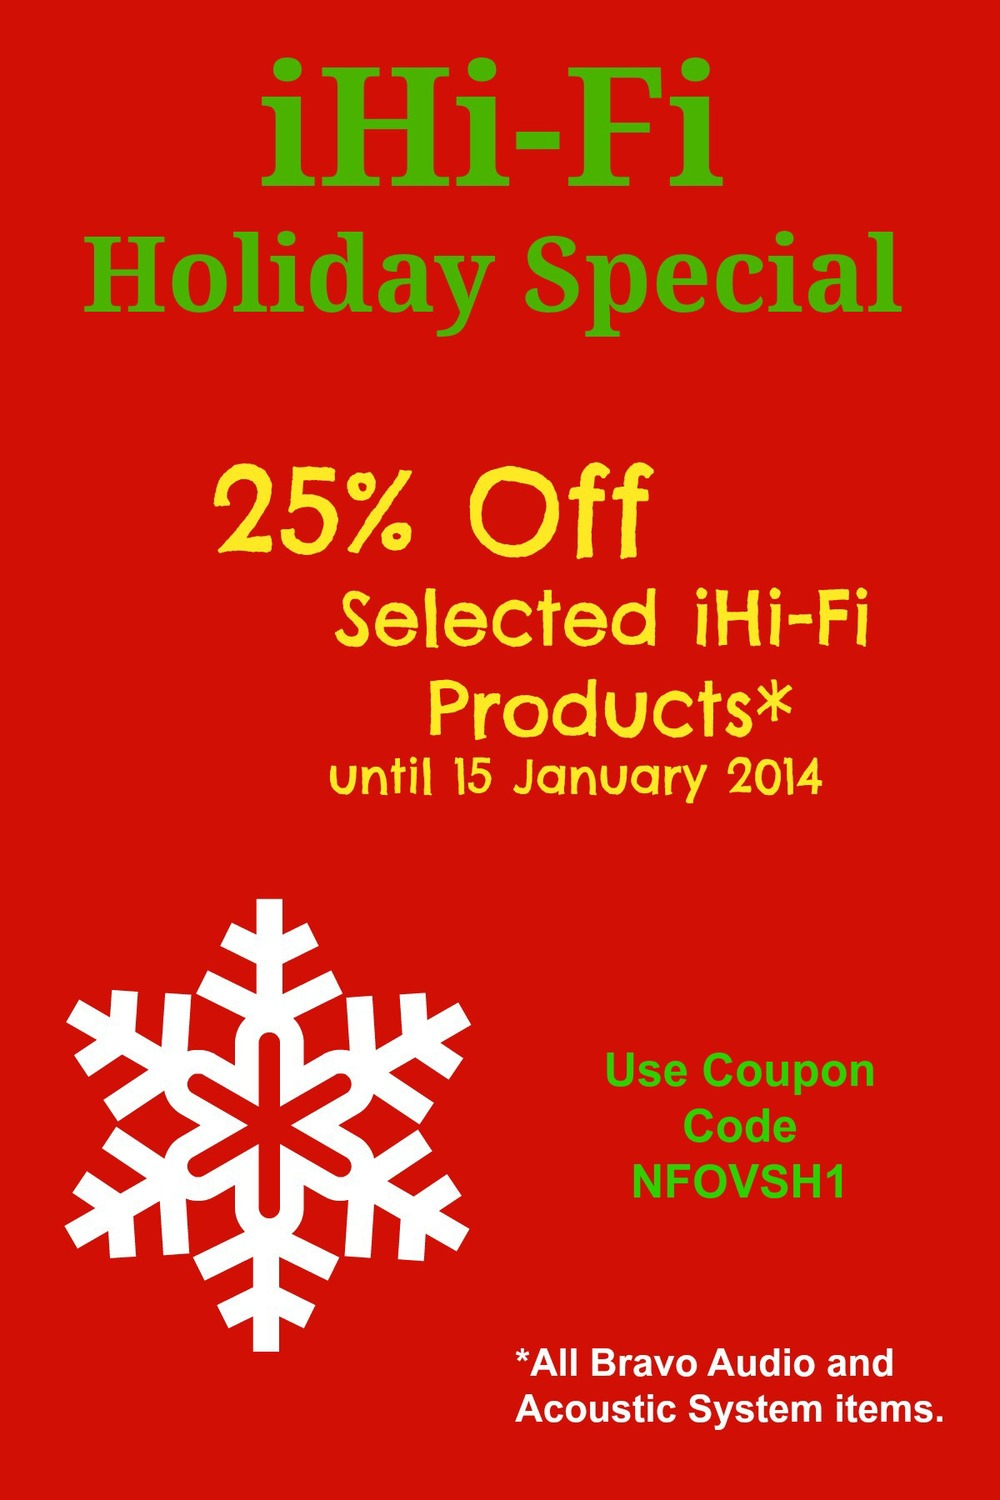 iHi-Fi Holiday Special.jpg